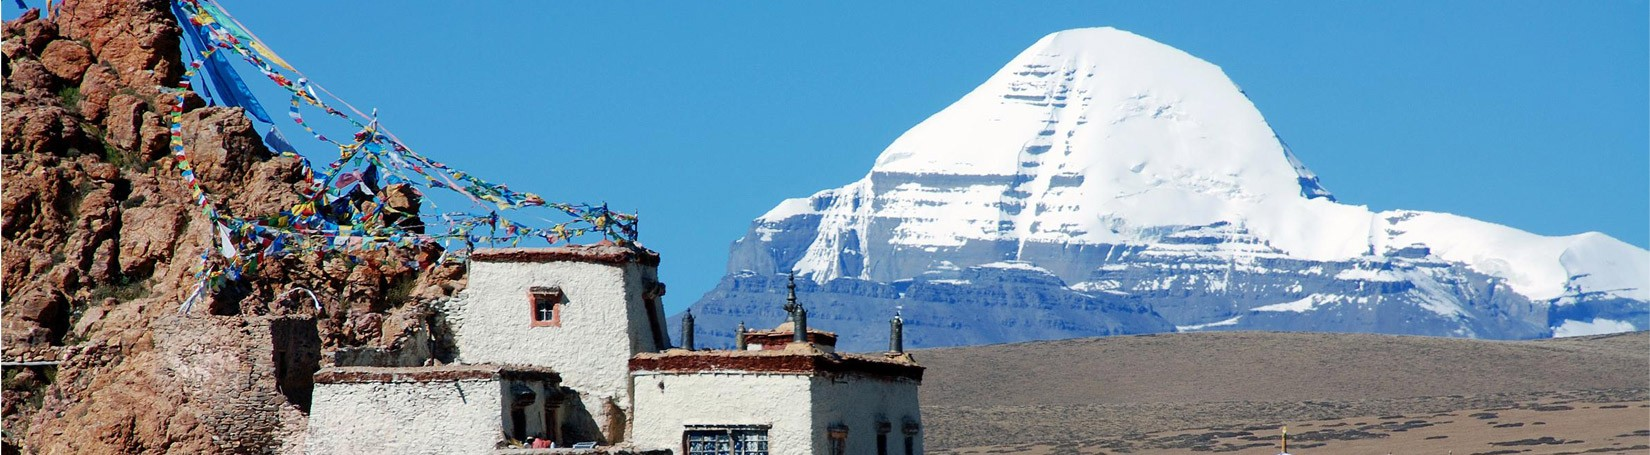 Chui Gubma and Mount Kailash in Western Tibet